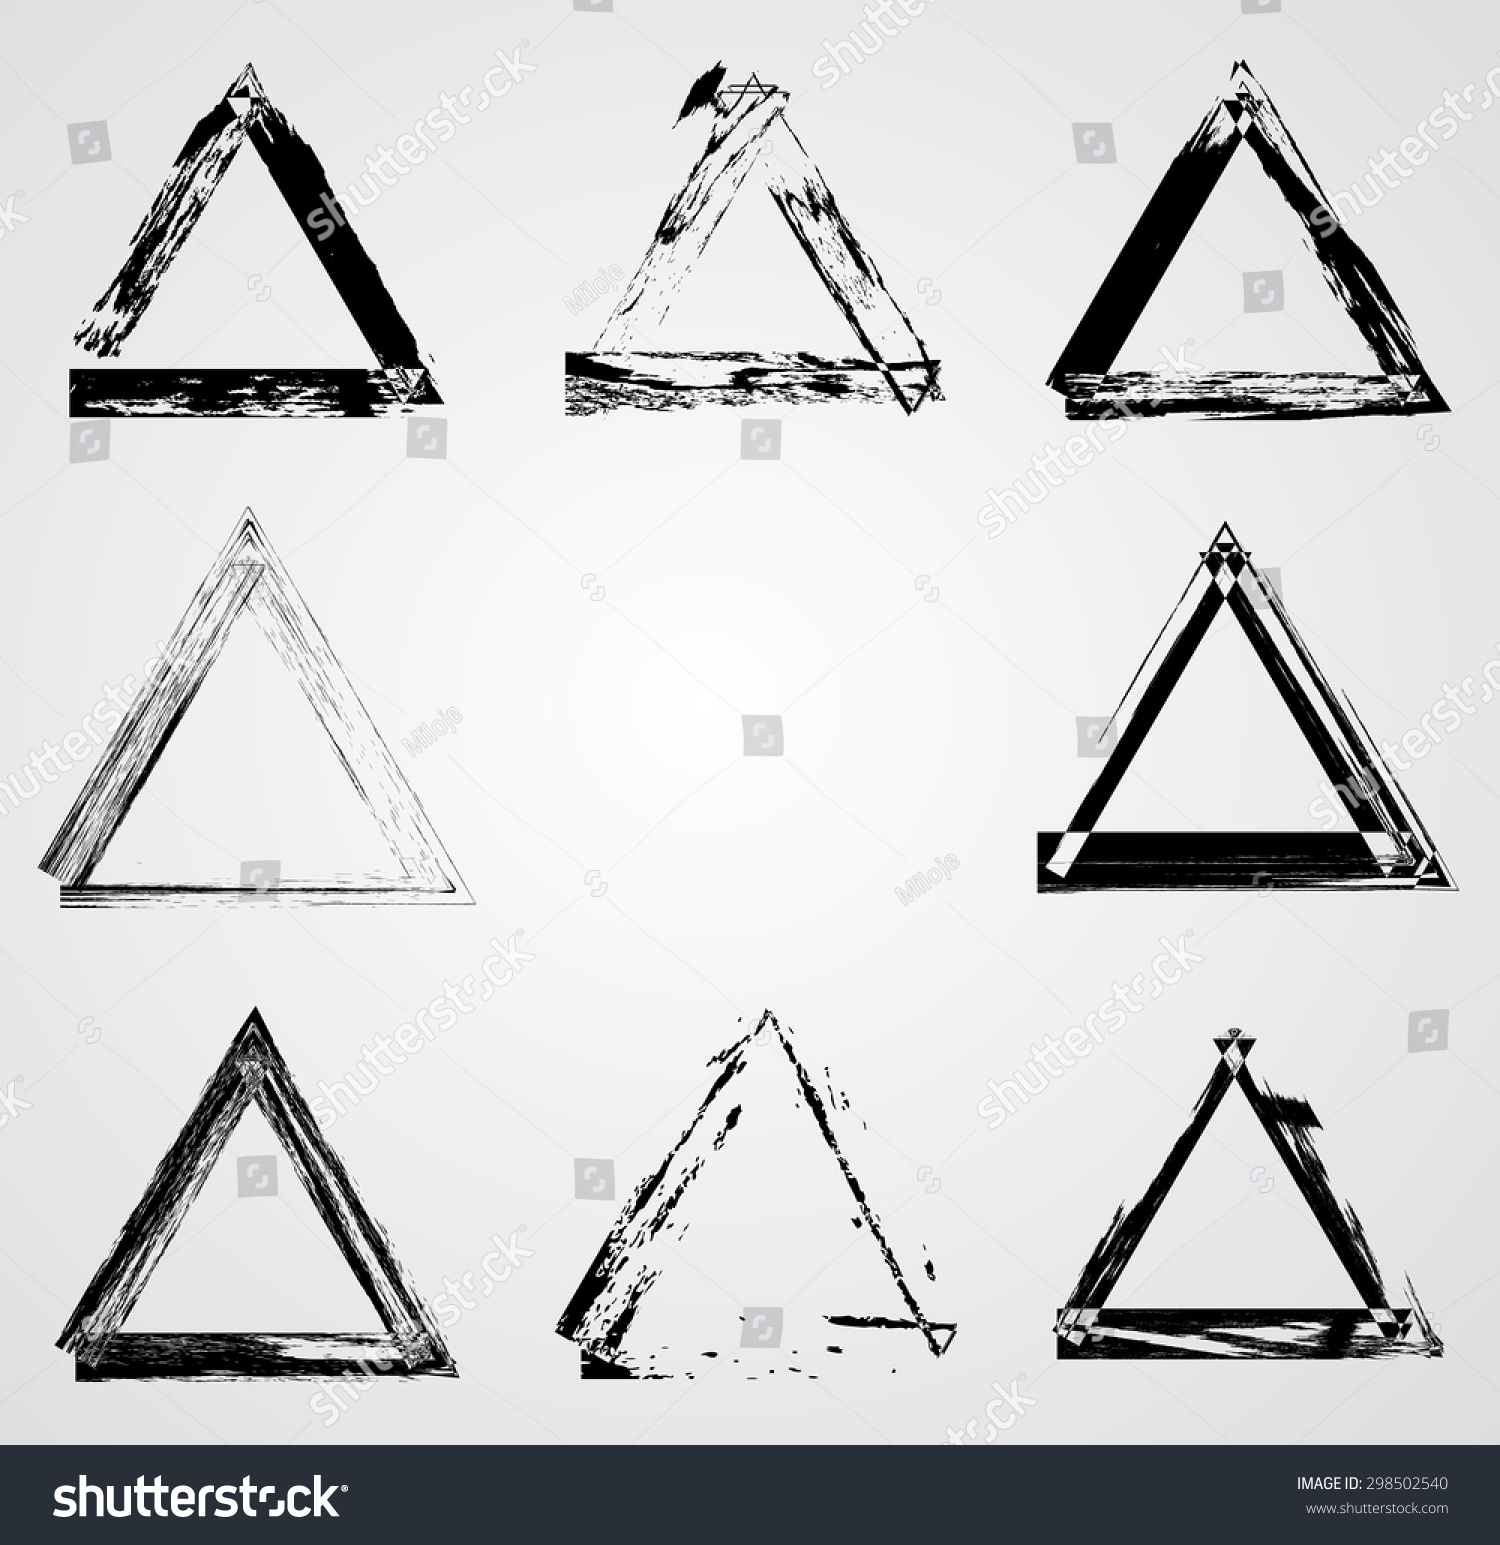 Triangle Frame Brush Stroke Gunge Elements Stock Vector 298502540 ...